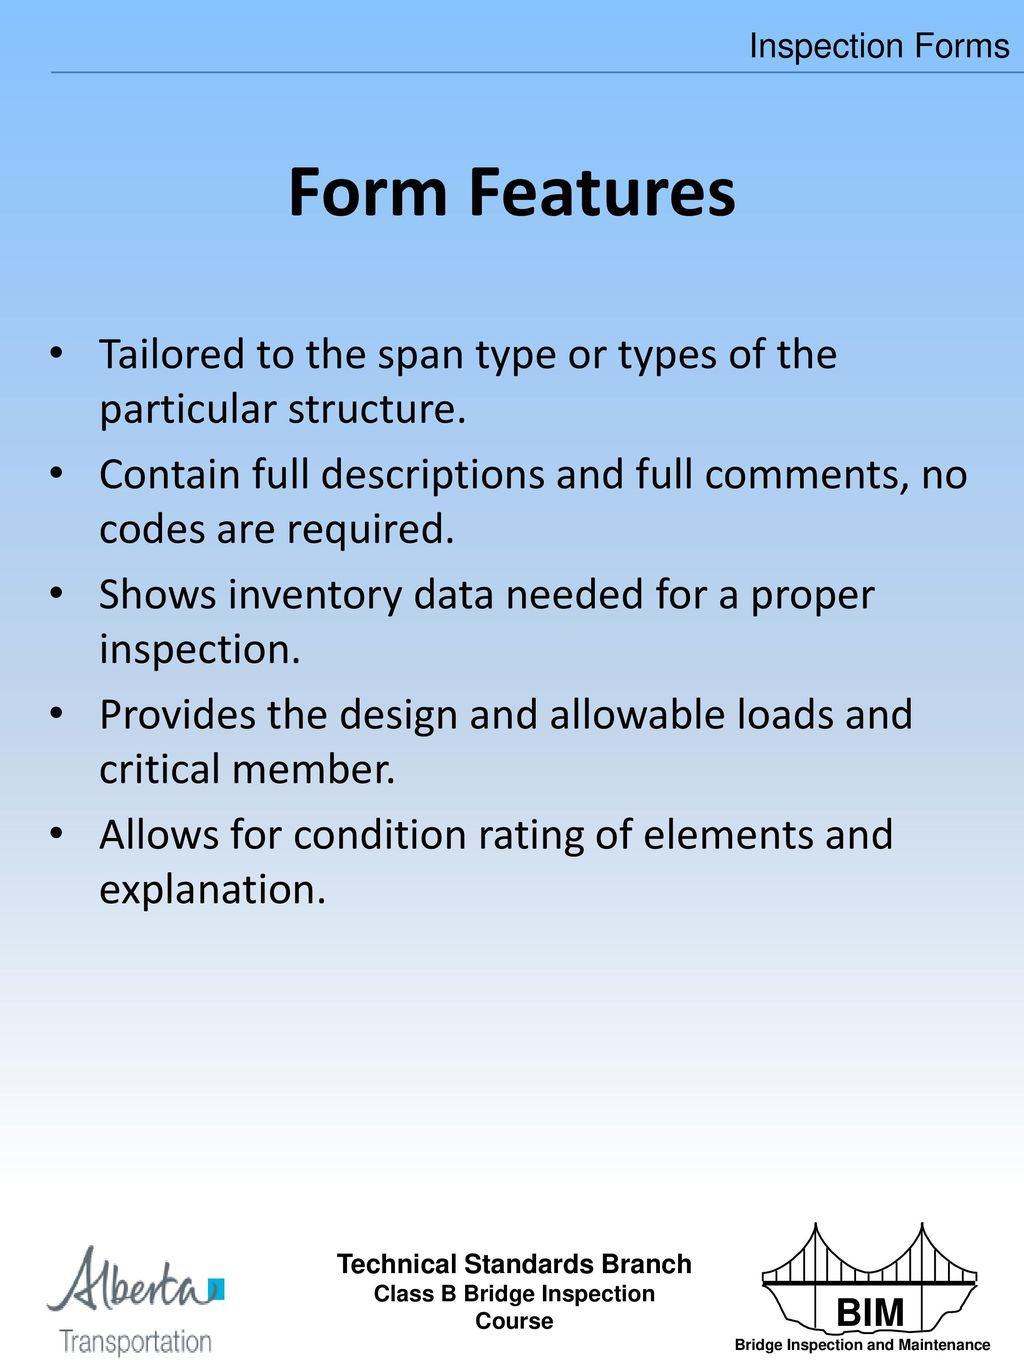 There are 2 Types of Bridge Inspectors – Class B and Class A